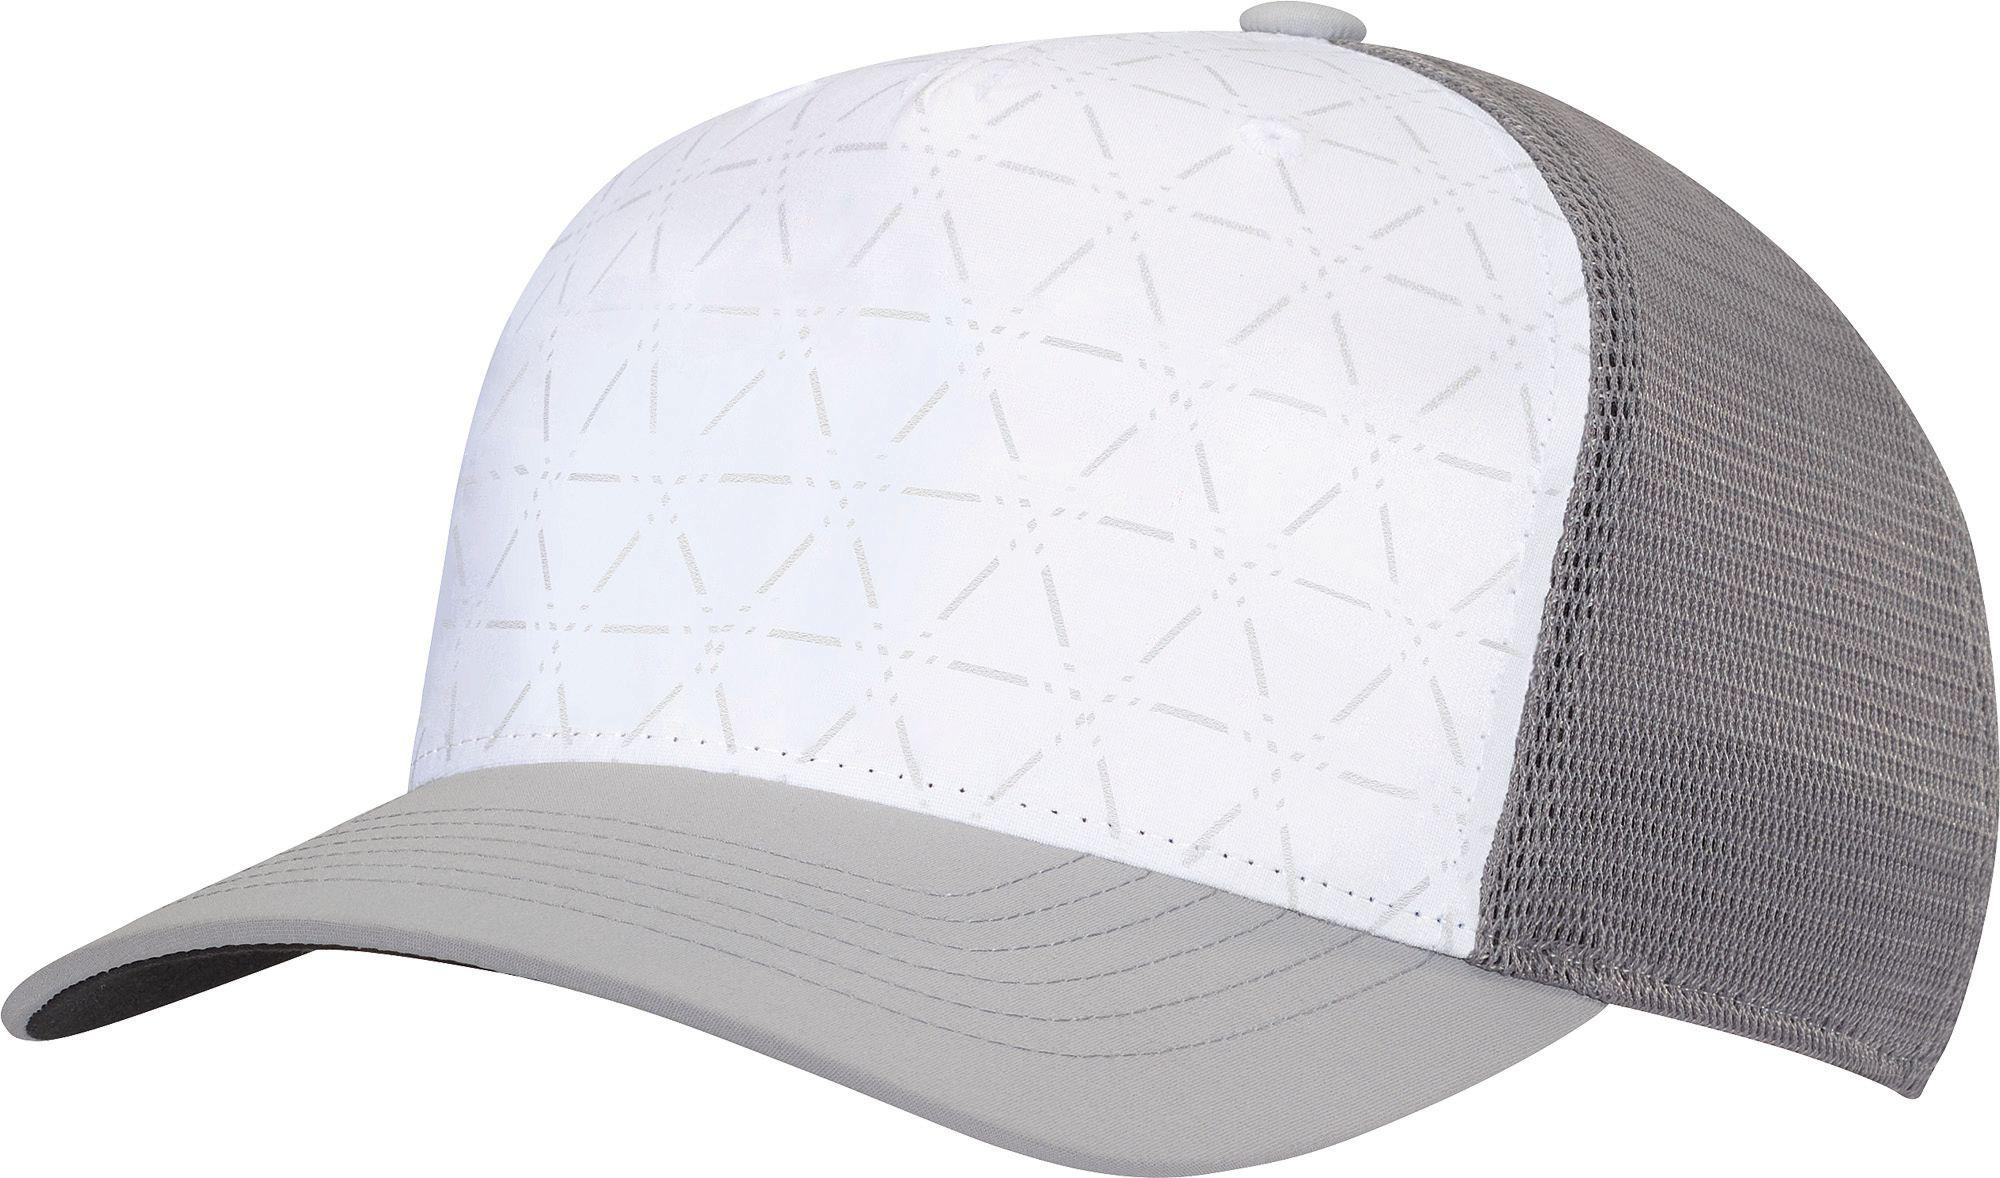 62dfc0a50c41d adidas Climacool Colorblock Mesh Golf Hat in White for Men - Lyst